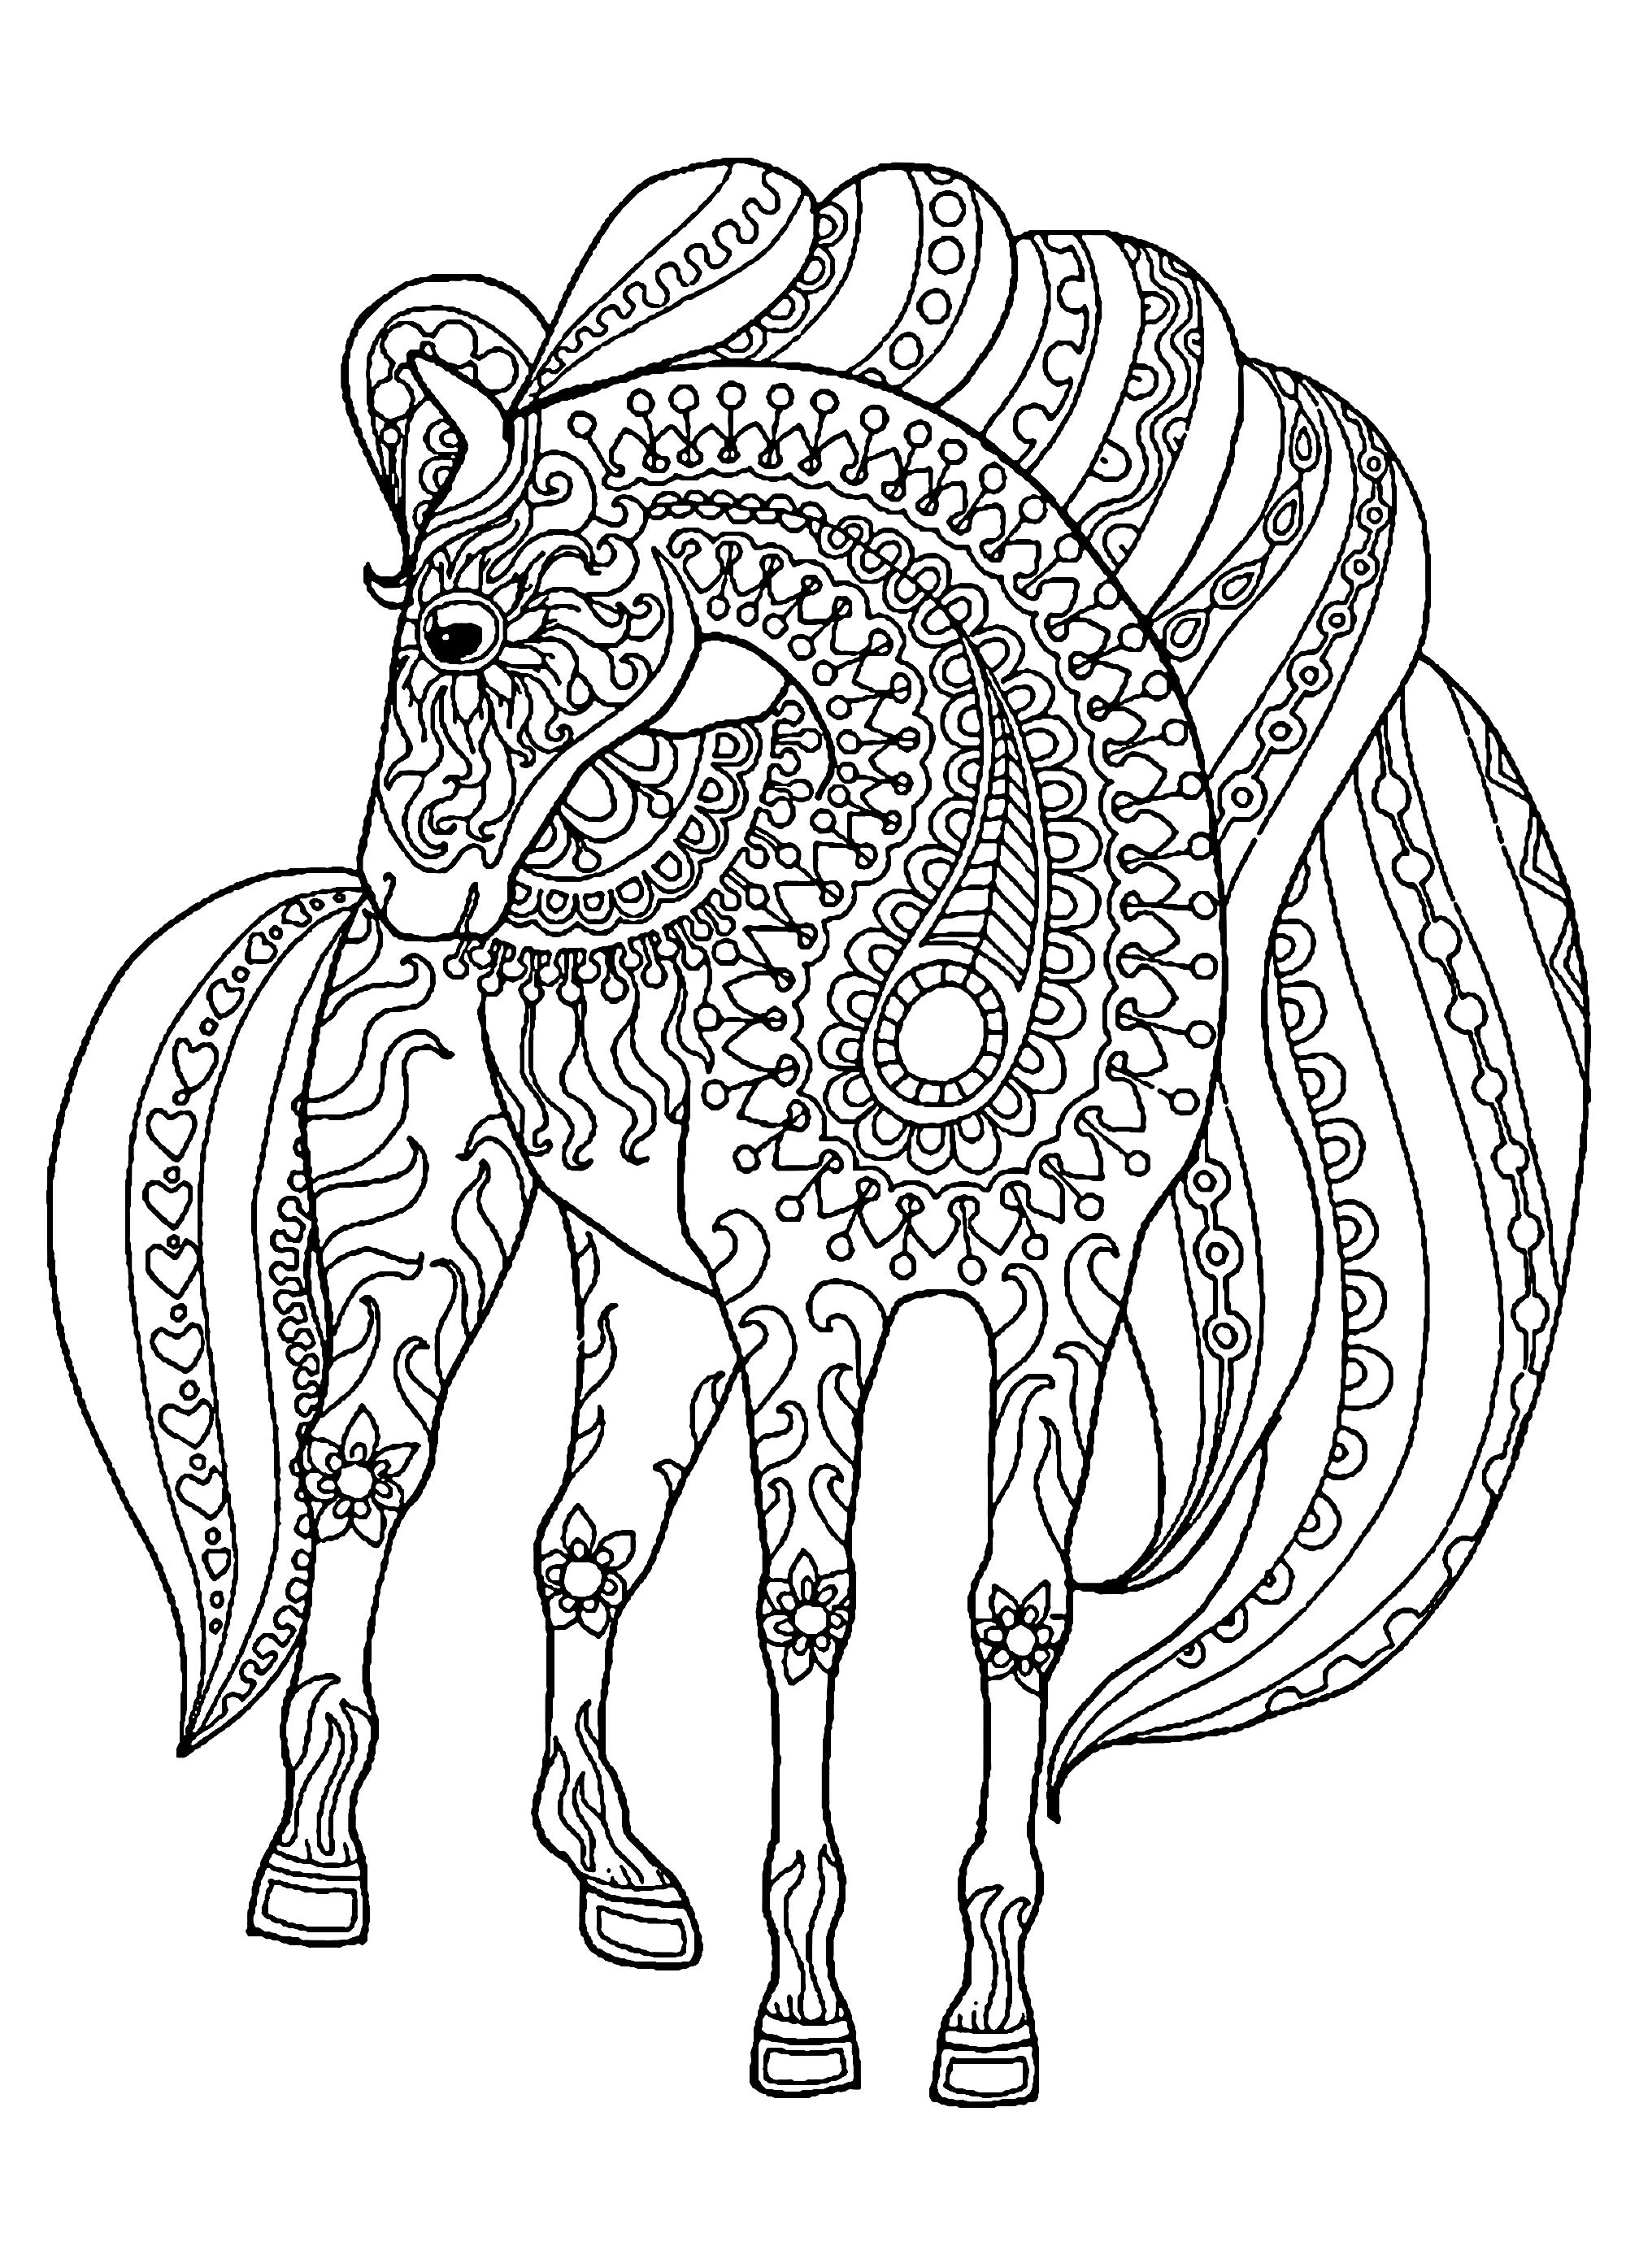 coloring pages of horses to print coloring pages of horses printable free coloring sheets pages to of coloring print horses